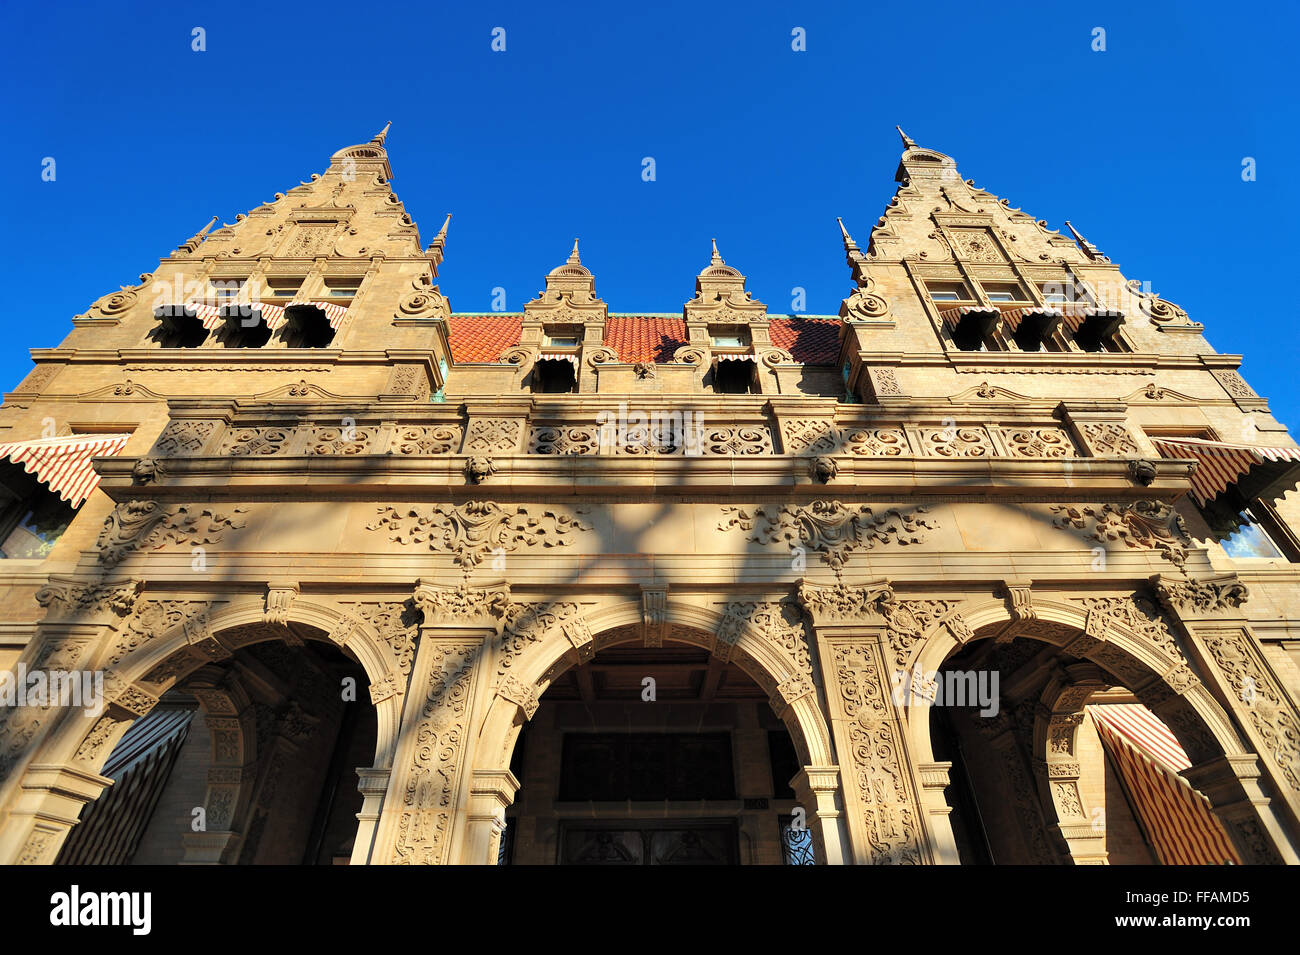 The front facade of the Pabst Mansion in Milwaukee, Wisconsin. The structure was completed in 1892. Milwaukee, Wisconsin, - Stock Image